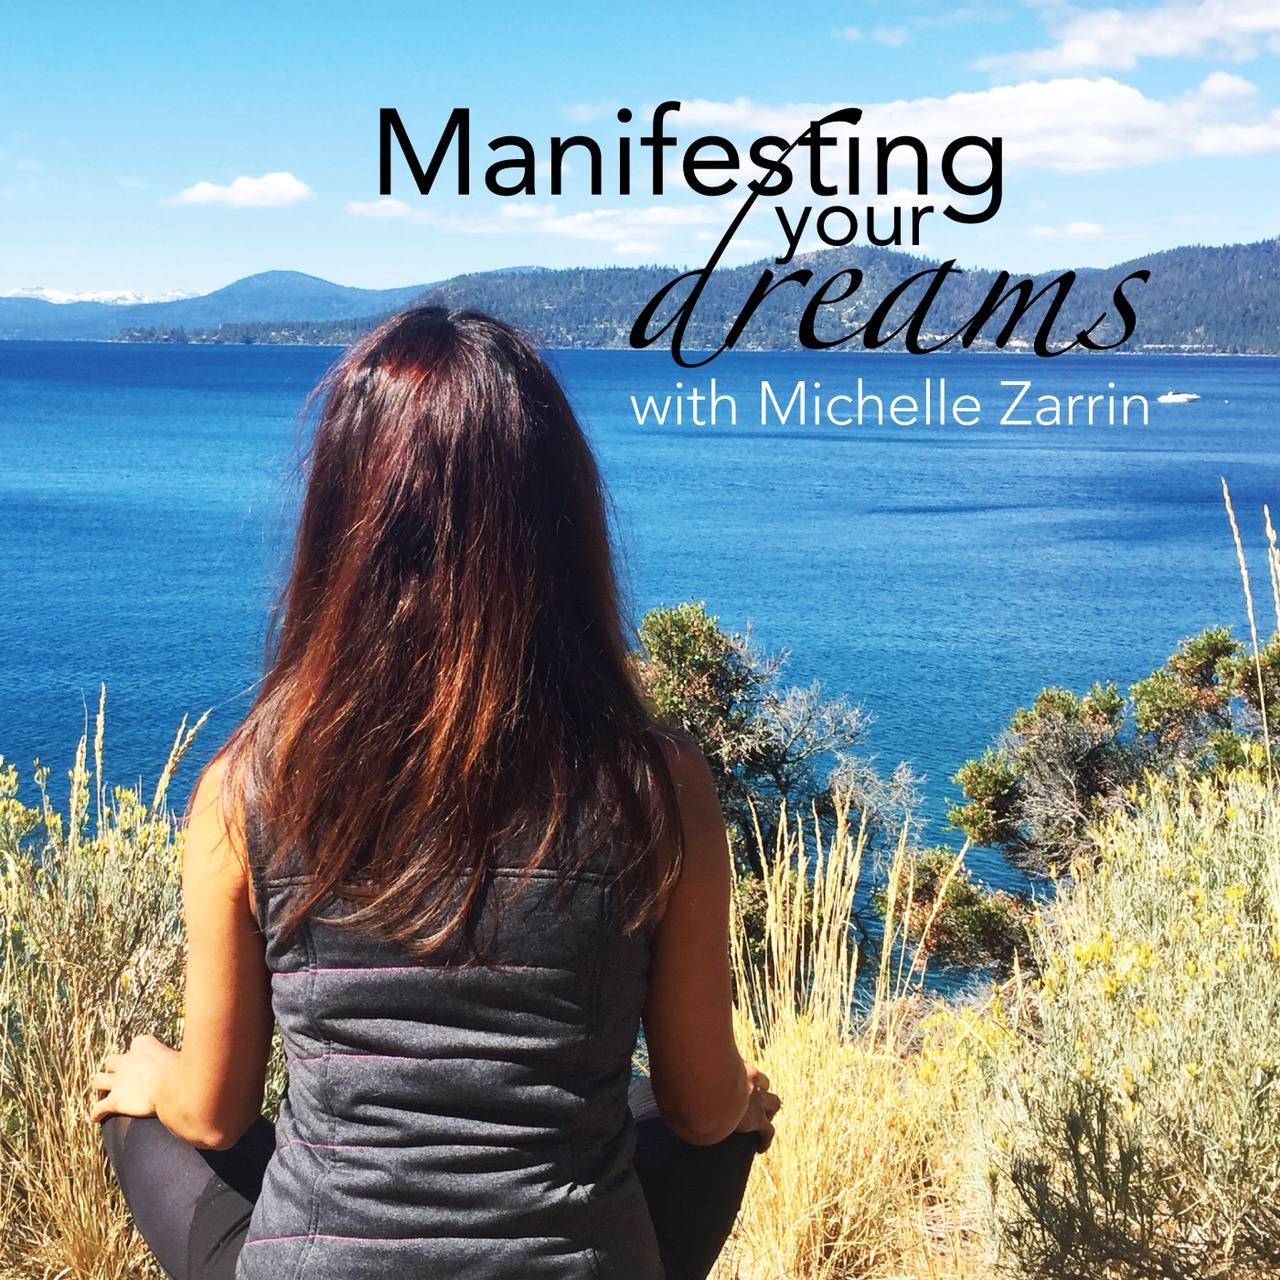 Hello Newsletter Family!  We are releasing a new meditation titled  Manifesting Your Dreams . It is different than the previous meditations, because this is a single meditation, not a series.  The release date of this meditation will be 20th of October, on Podcast. Once Insight Timer releases it as well, I will make the announcement on social media. You can find links to my social media accounts at the bottom of this newsletter.  There are different angles to take when it comes to manifesting our dreams. In this meditation, I walk you through one very important angle: Understanding the importance of your thoughts plus your feelings when desiring an outcome.  Our mind loves to project fear and doubt when we think about our dreams. However, these only become a hindrance and block us from moving forward.  In this meditation, we work through breaking free from these negative states of mind. And then  feel  the outcome/situation/person we'd like to become.  Thoughts and feelings are formless. And we need to lay a good foundation with the formless before life will give way to the form.  Formless always precedes form. Everything is an idea before it becomes tangible. And the energy we give to the formless (thoughts and feelings) is so crucial.  I suggest doing this meditation repeatedly through time. Because the mind does not adjust right away. Since the mind loves habits, it takes it time to adjust to a new way of being.  Also, in last week's newsletter, I shared a video that is an accompaniment to this meditation. In the video, I present another angle to manifesting our dreams. The link for last week's newsletter is:  http://michellezarrin.com/need-know-creating-life-want/   A note about upcoming meditations: Next month we will be releasing another meditation. That one is single as well, not a series. I have the inspiration for another series. And my goal is to release that series in early 2018.  We also believe this meditation,  Manifesting Your Dreams  could be turned into a series. So you may see that sometime in 2018.   If you know of anyone who could benefit from the message of this newsletter, please forward it to them.   I wish each of you an enchanting week!  With Gratitude,  Michelle   MichelleZarrin.com   info@MichelleZarrin.com  Instagram:  www.instagram.com/michelle_zarrin/  Facebook:  www.facebook.com/Michelle-Zarrin-490548611007735/